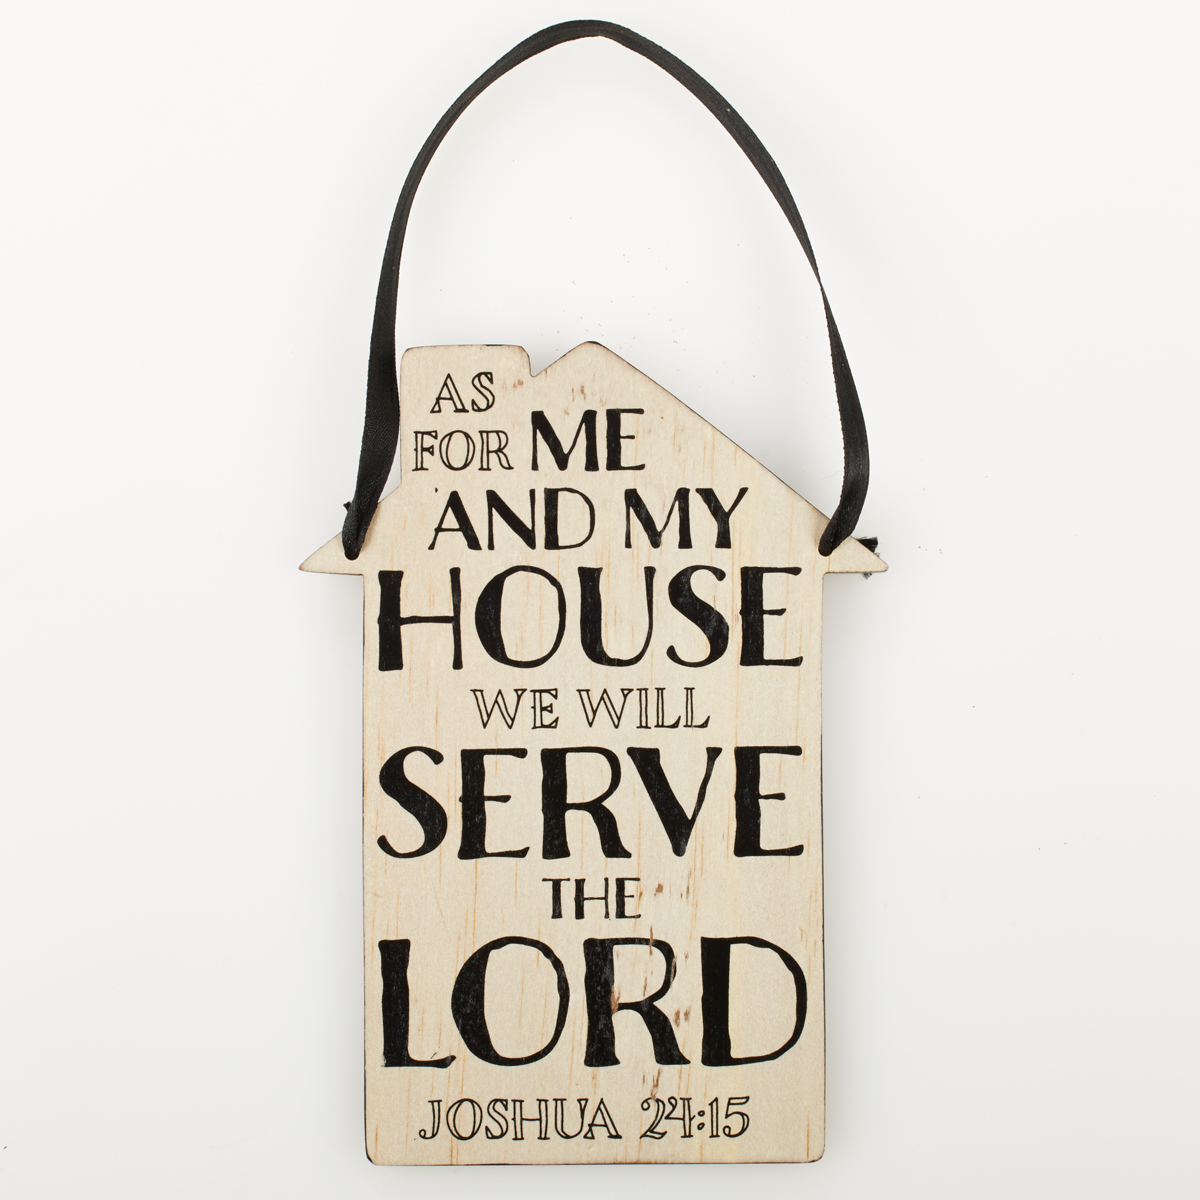 Door Hanger As For Me And My House - Joshua 241 | Christian Art Gifts & Door Hanger: As For Me And My House - Joshua 24:1 | Christian Art ...